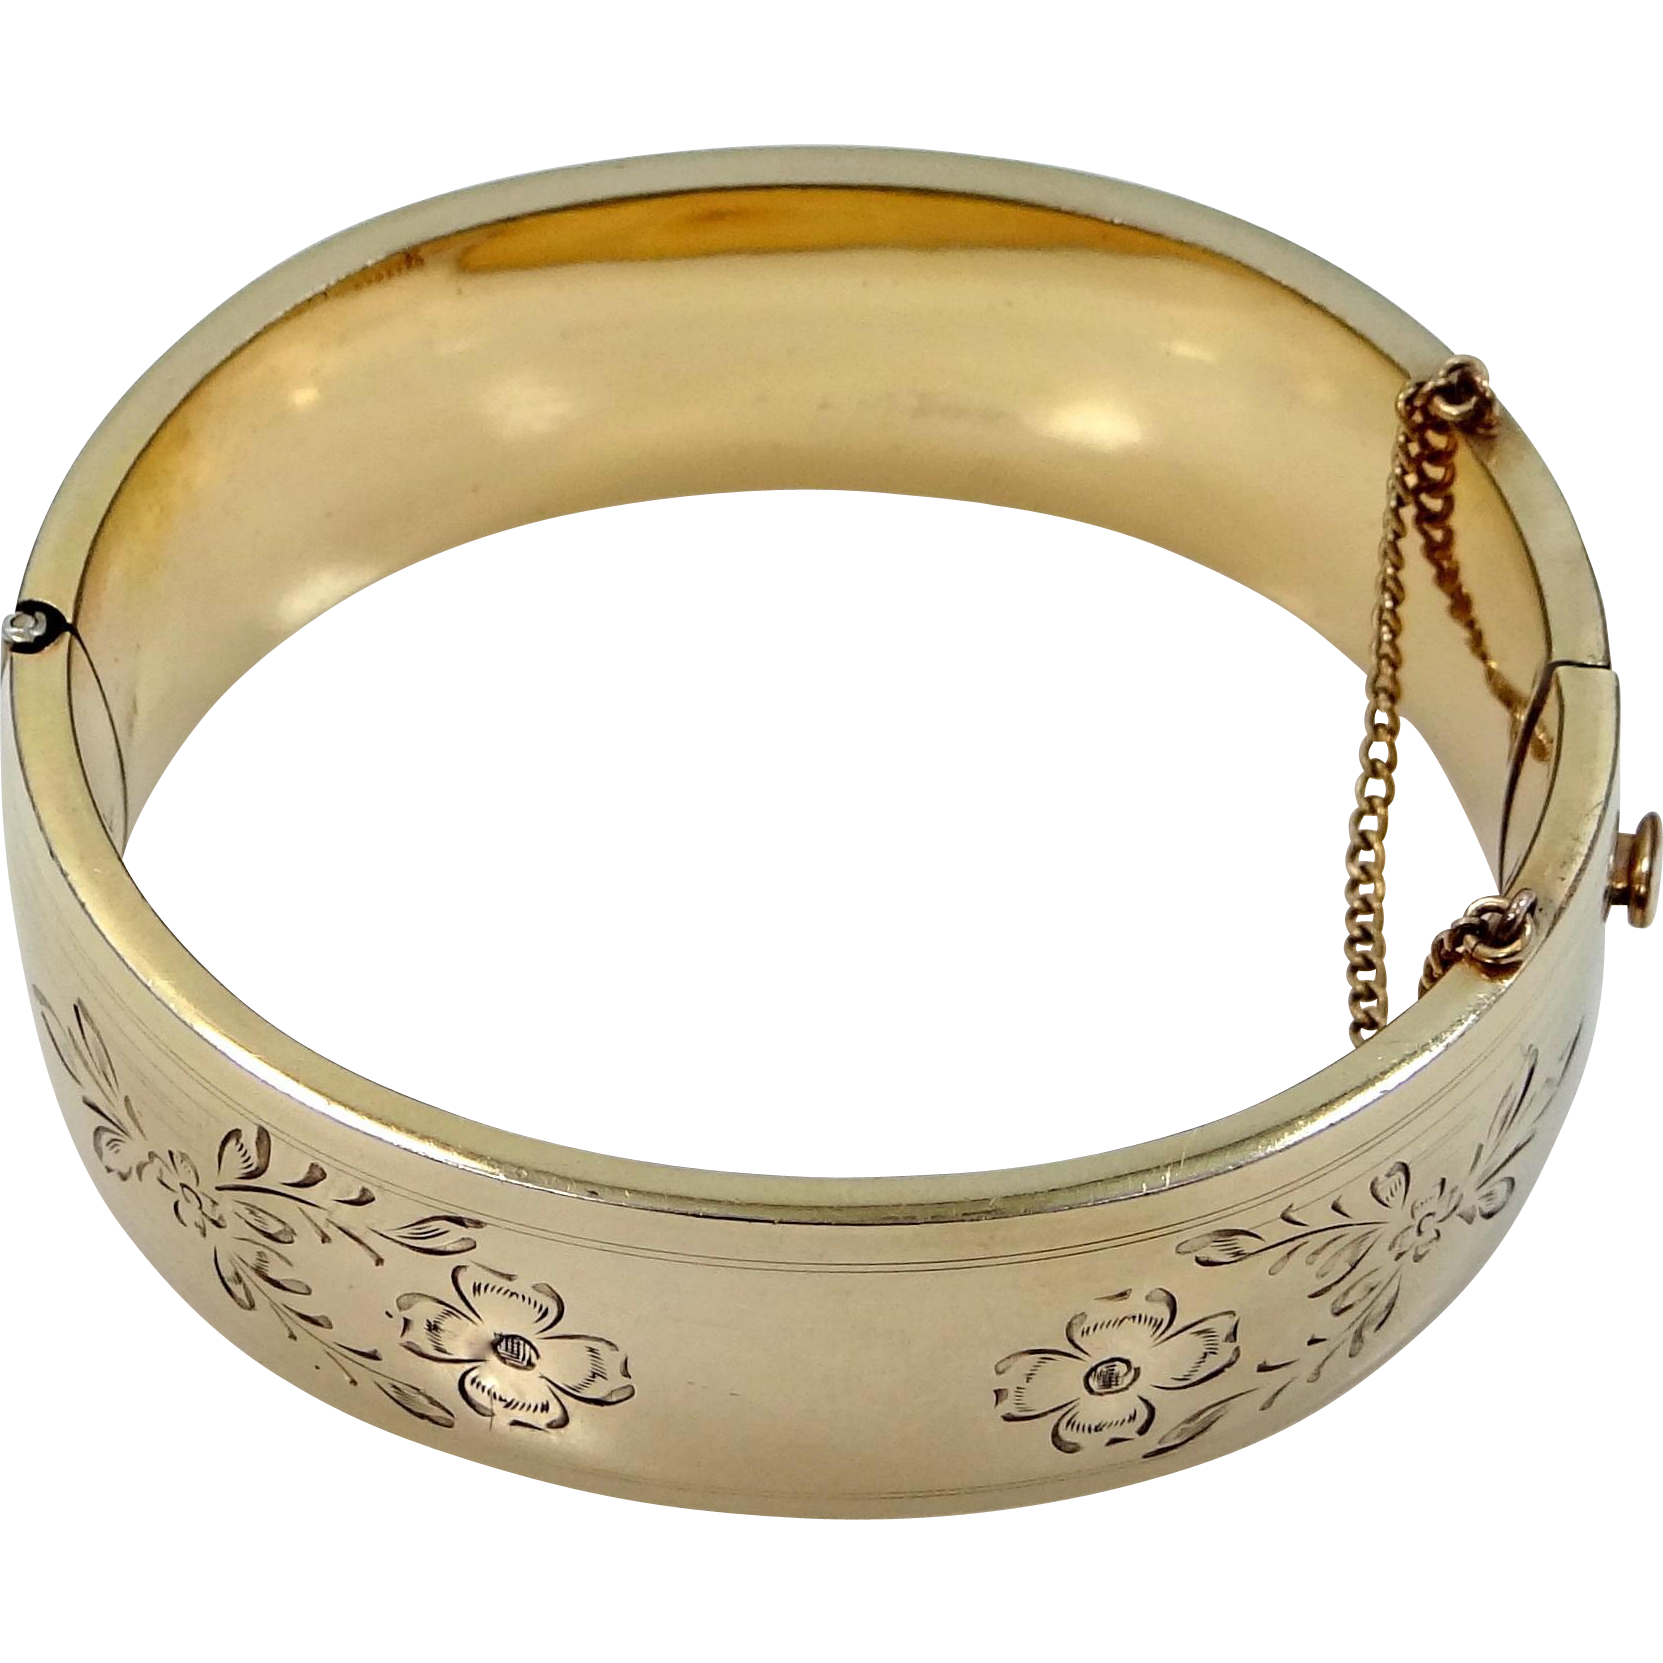 B.A. Ballou 1930s Wide Etched Bangle Bracelet